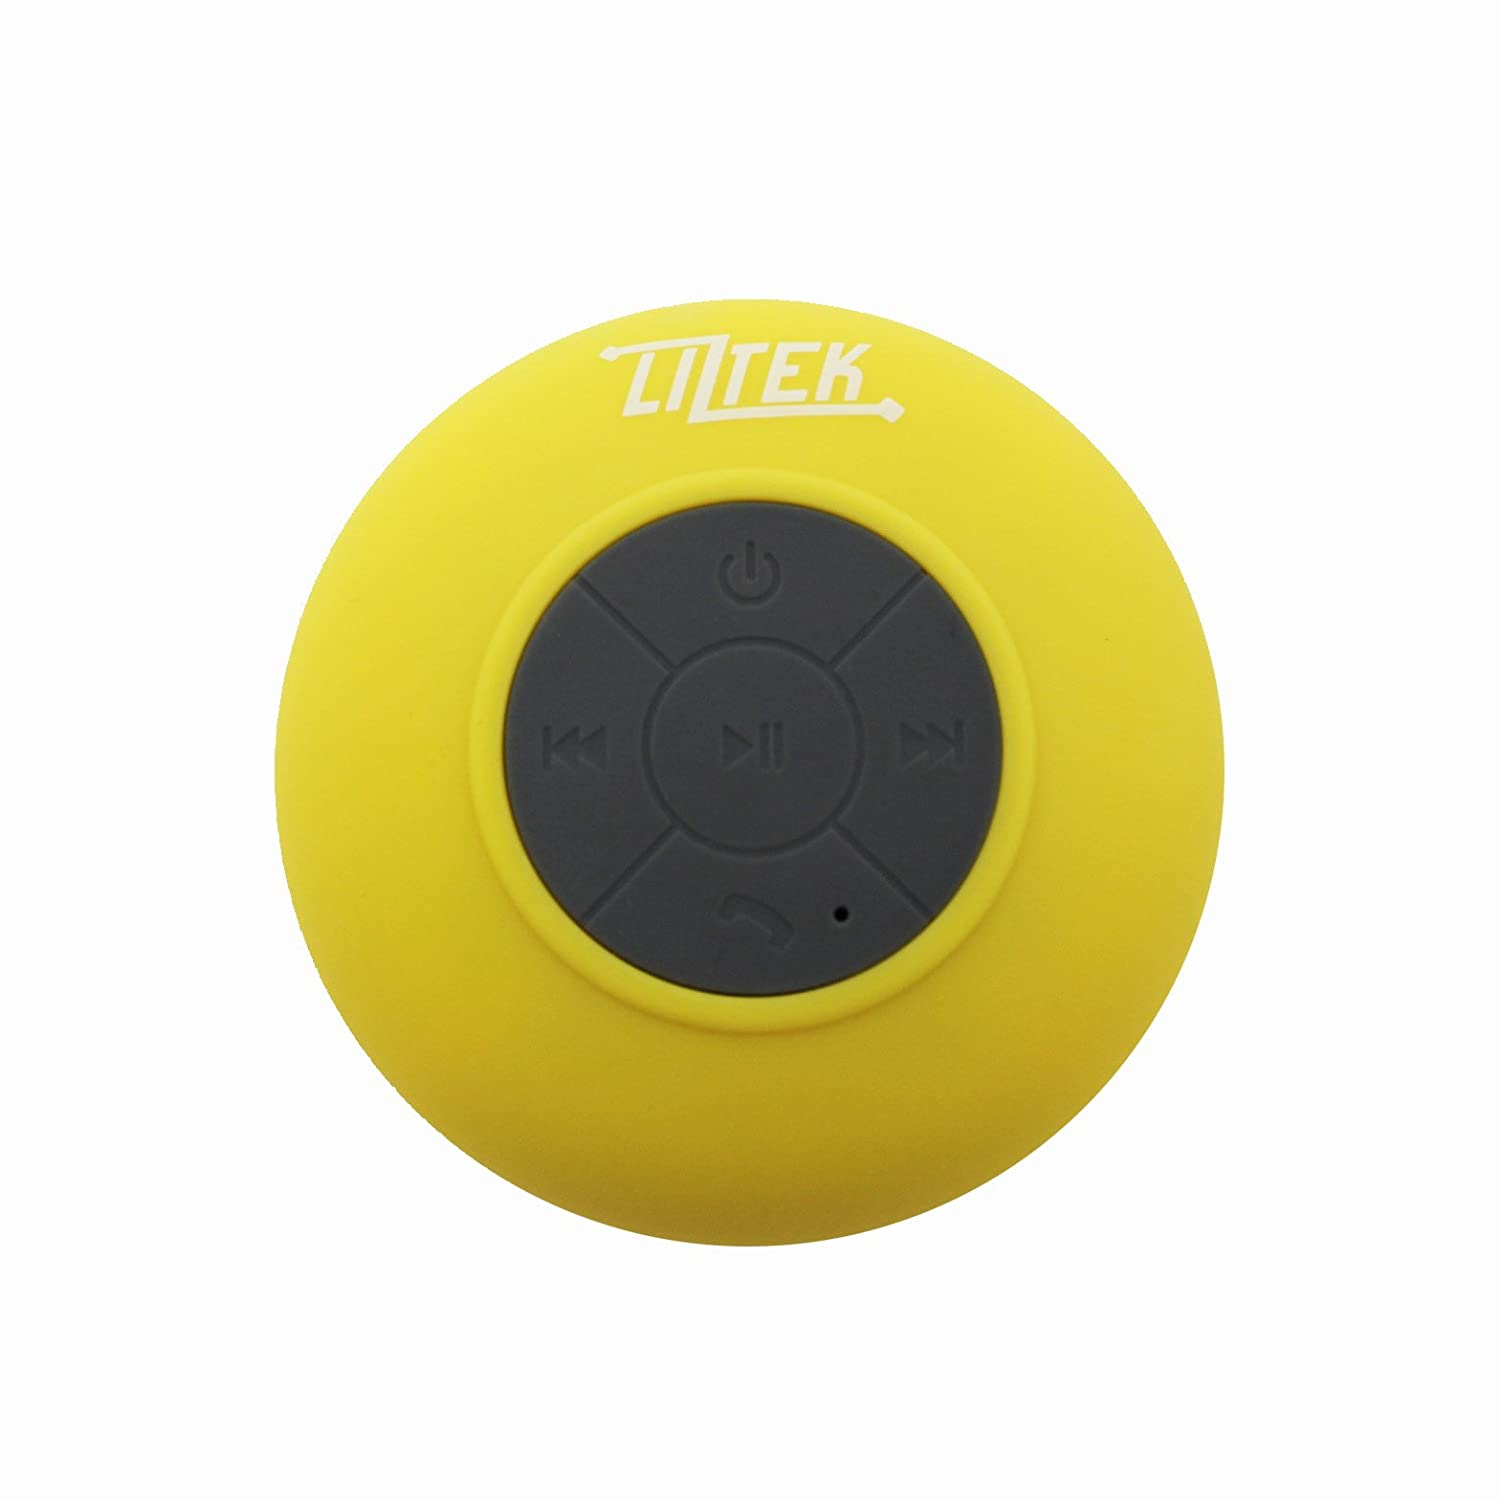 HD Water Resistant Bluetooth 3.0 Shower Speaker Liztek FBA_JSS-100O